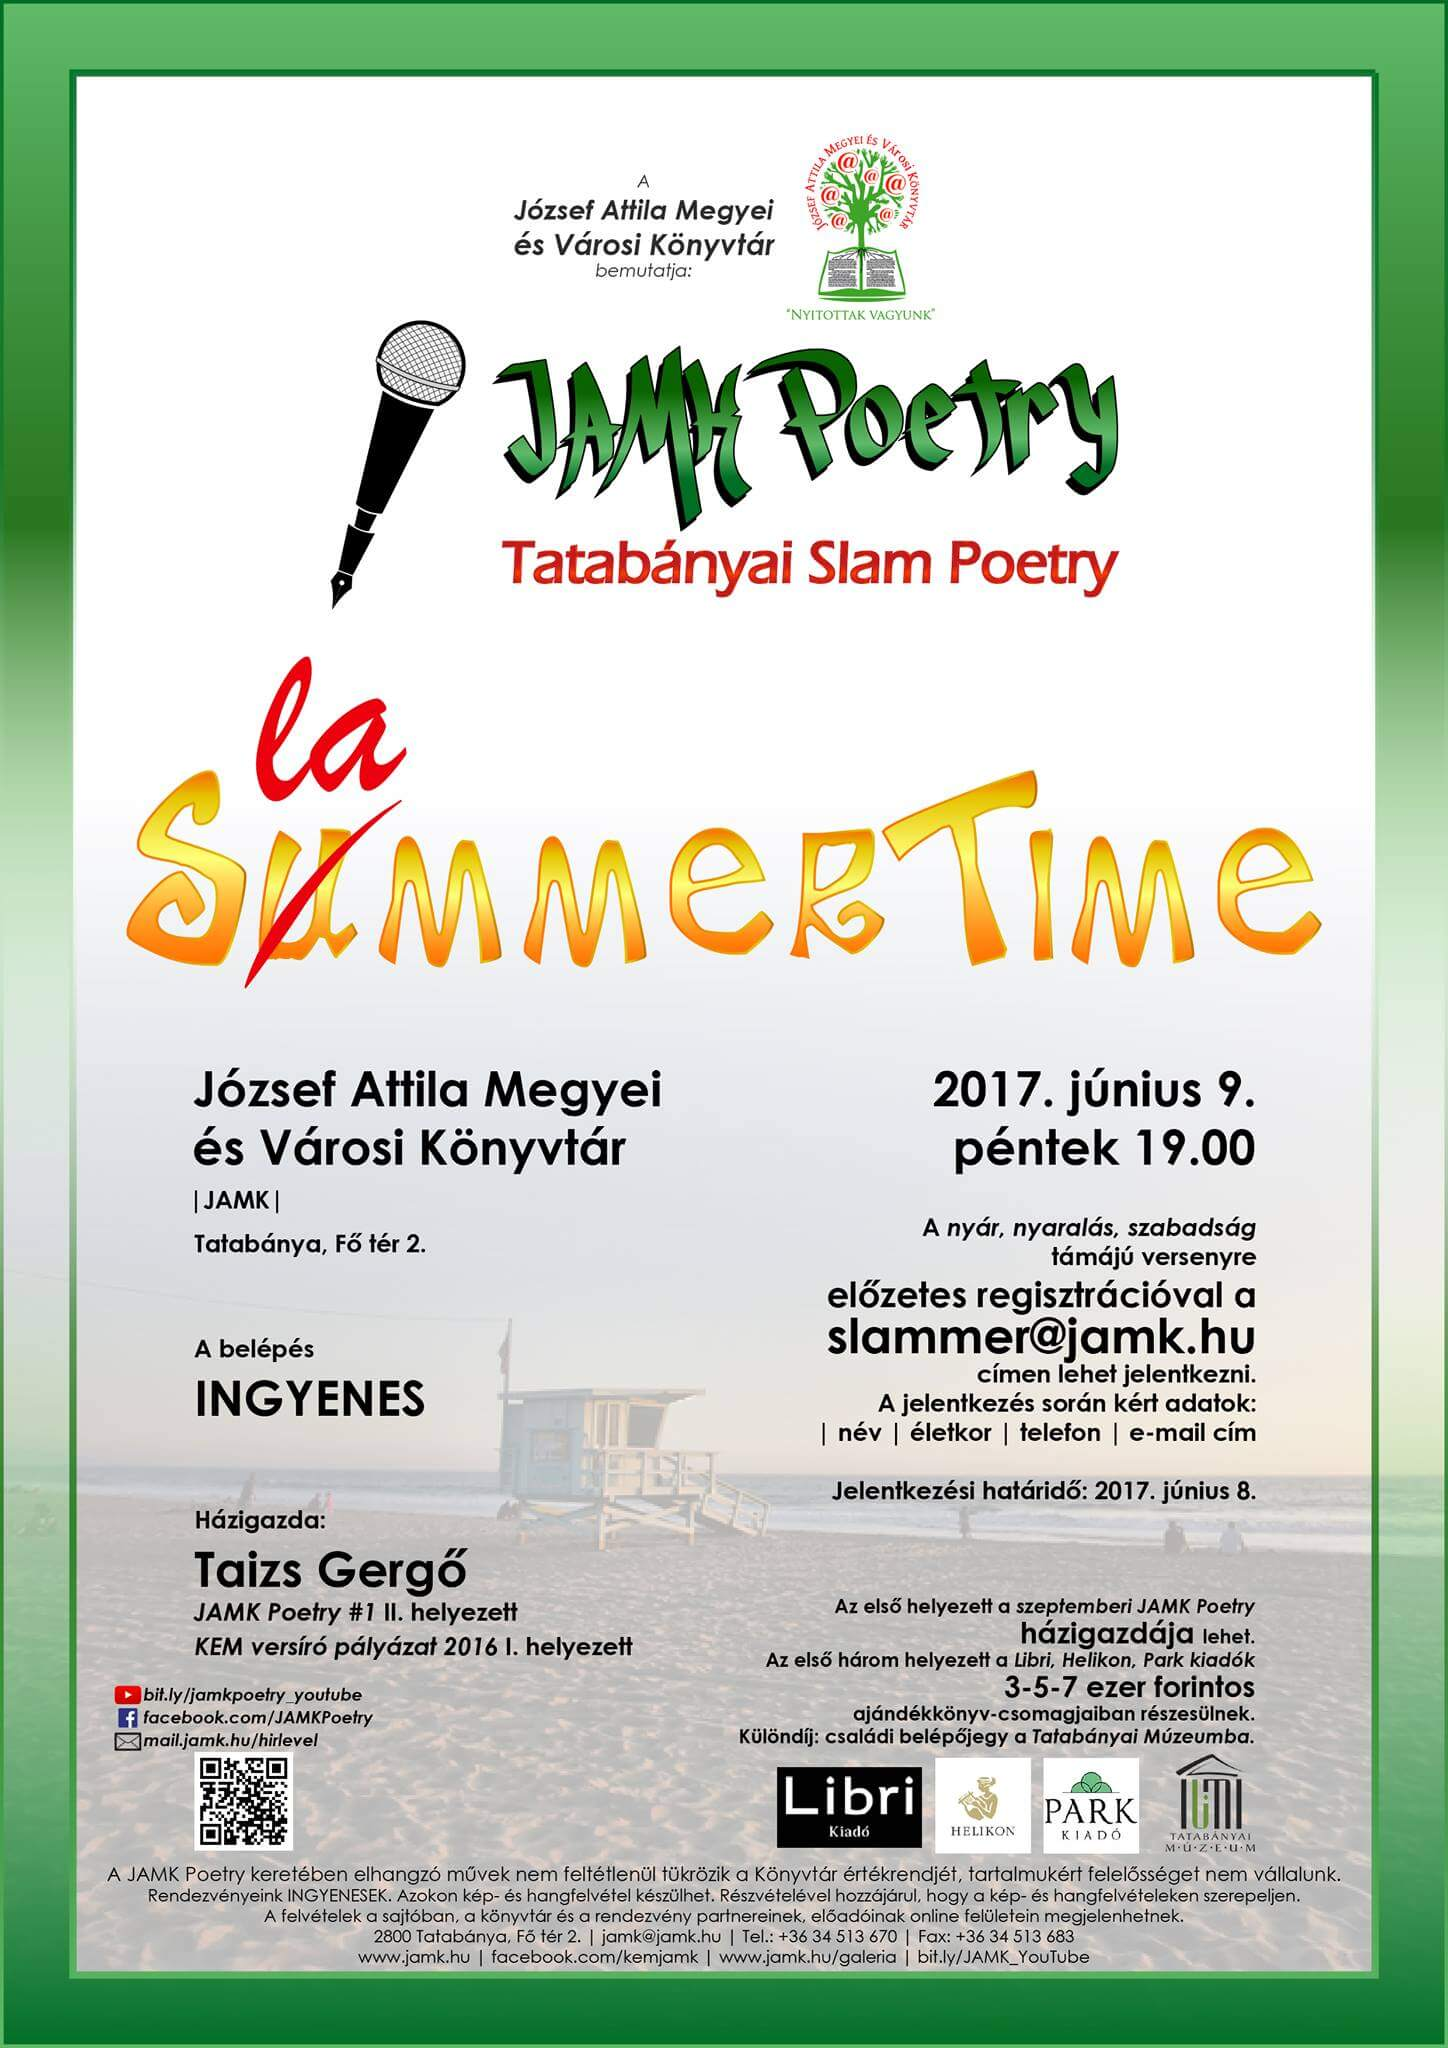 SummerSlammerTime – V. JAMK Poetry